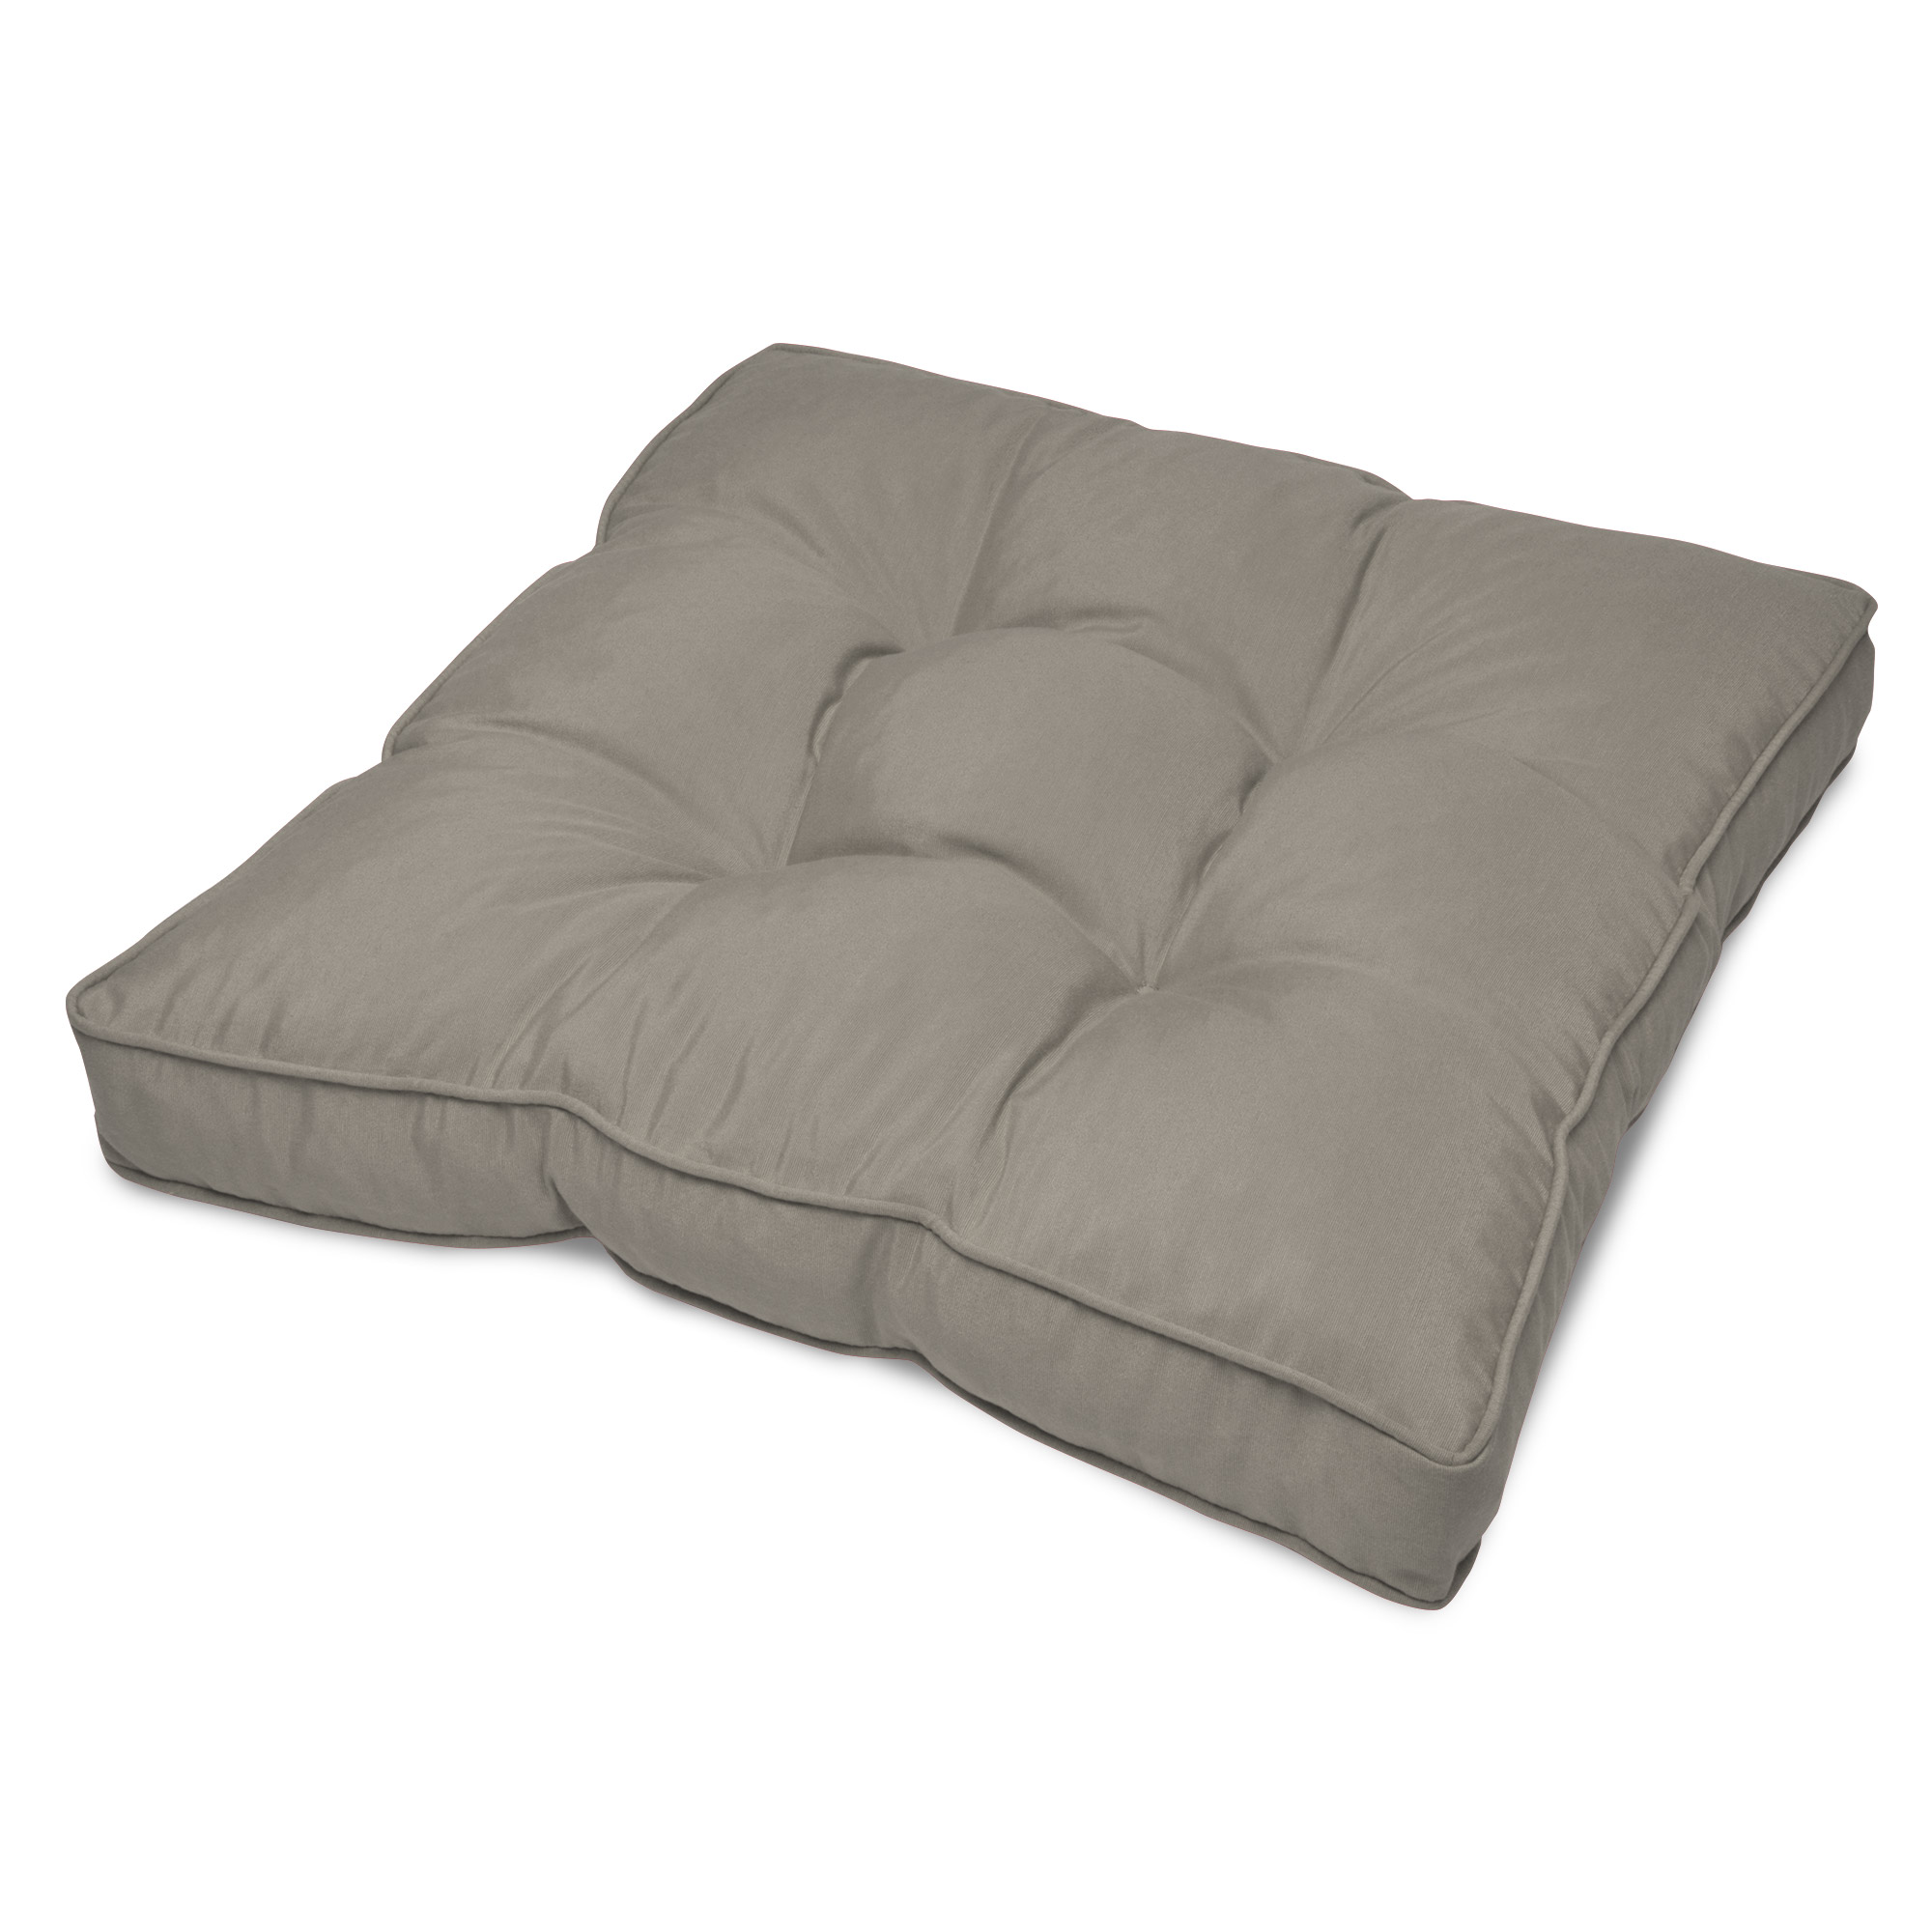 Details About Water Resistant Cover Outdoor Cushion Grey 70 X 70 X 10 Cm Chair Pad Light Grey